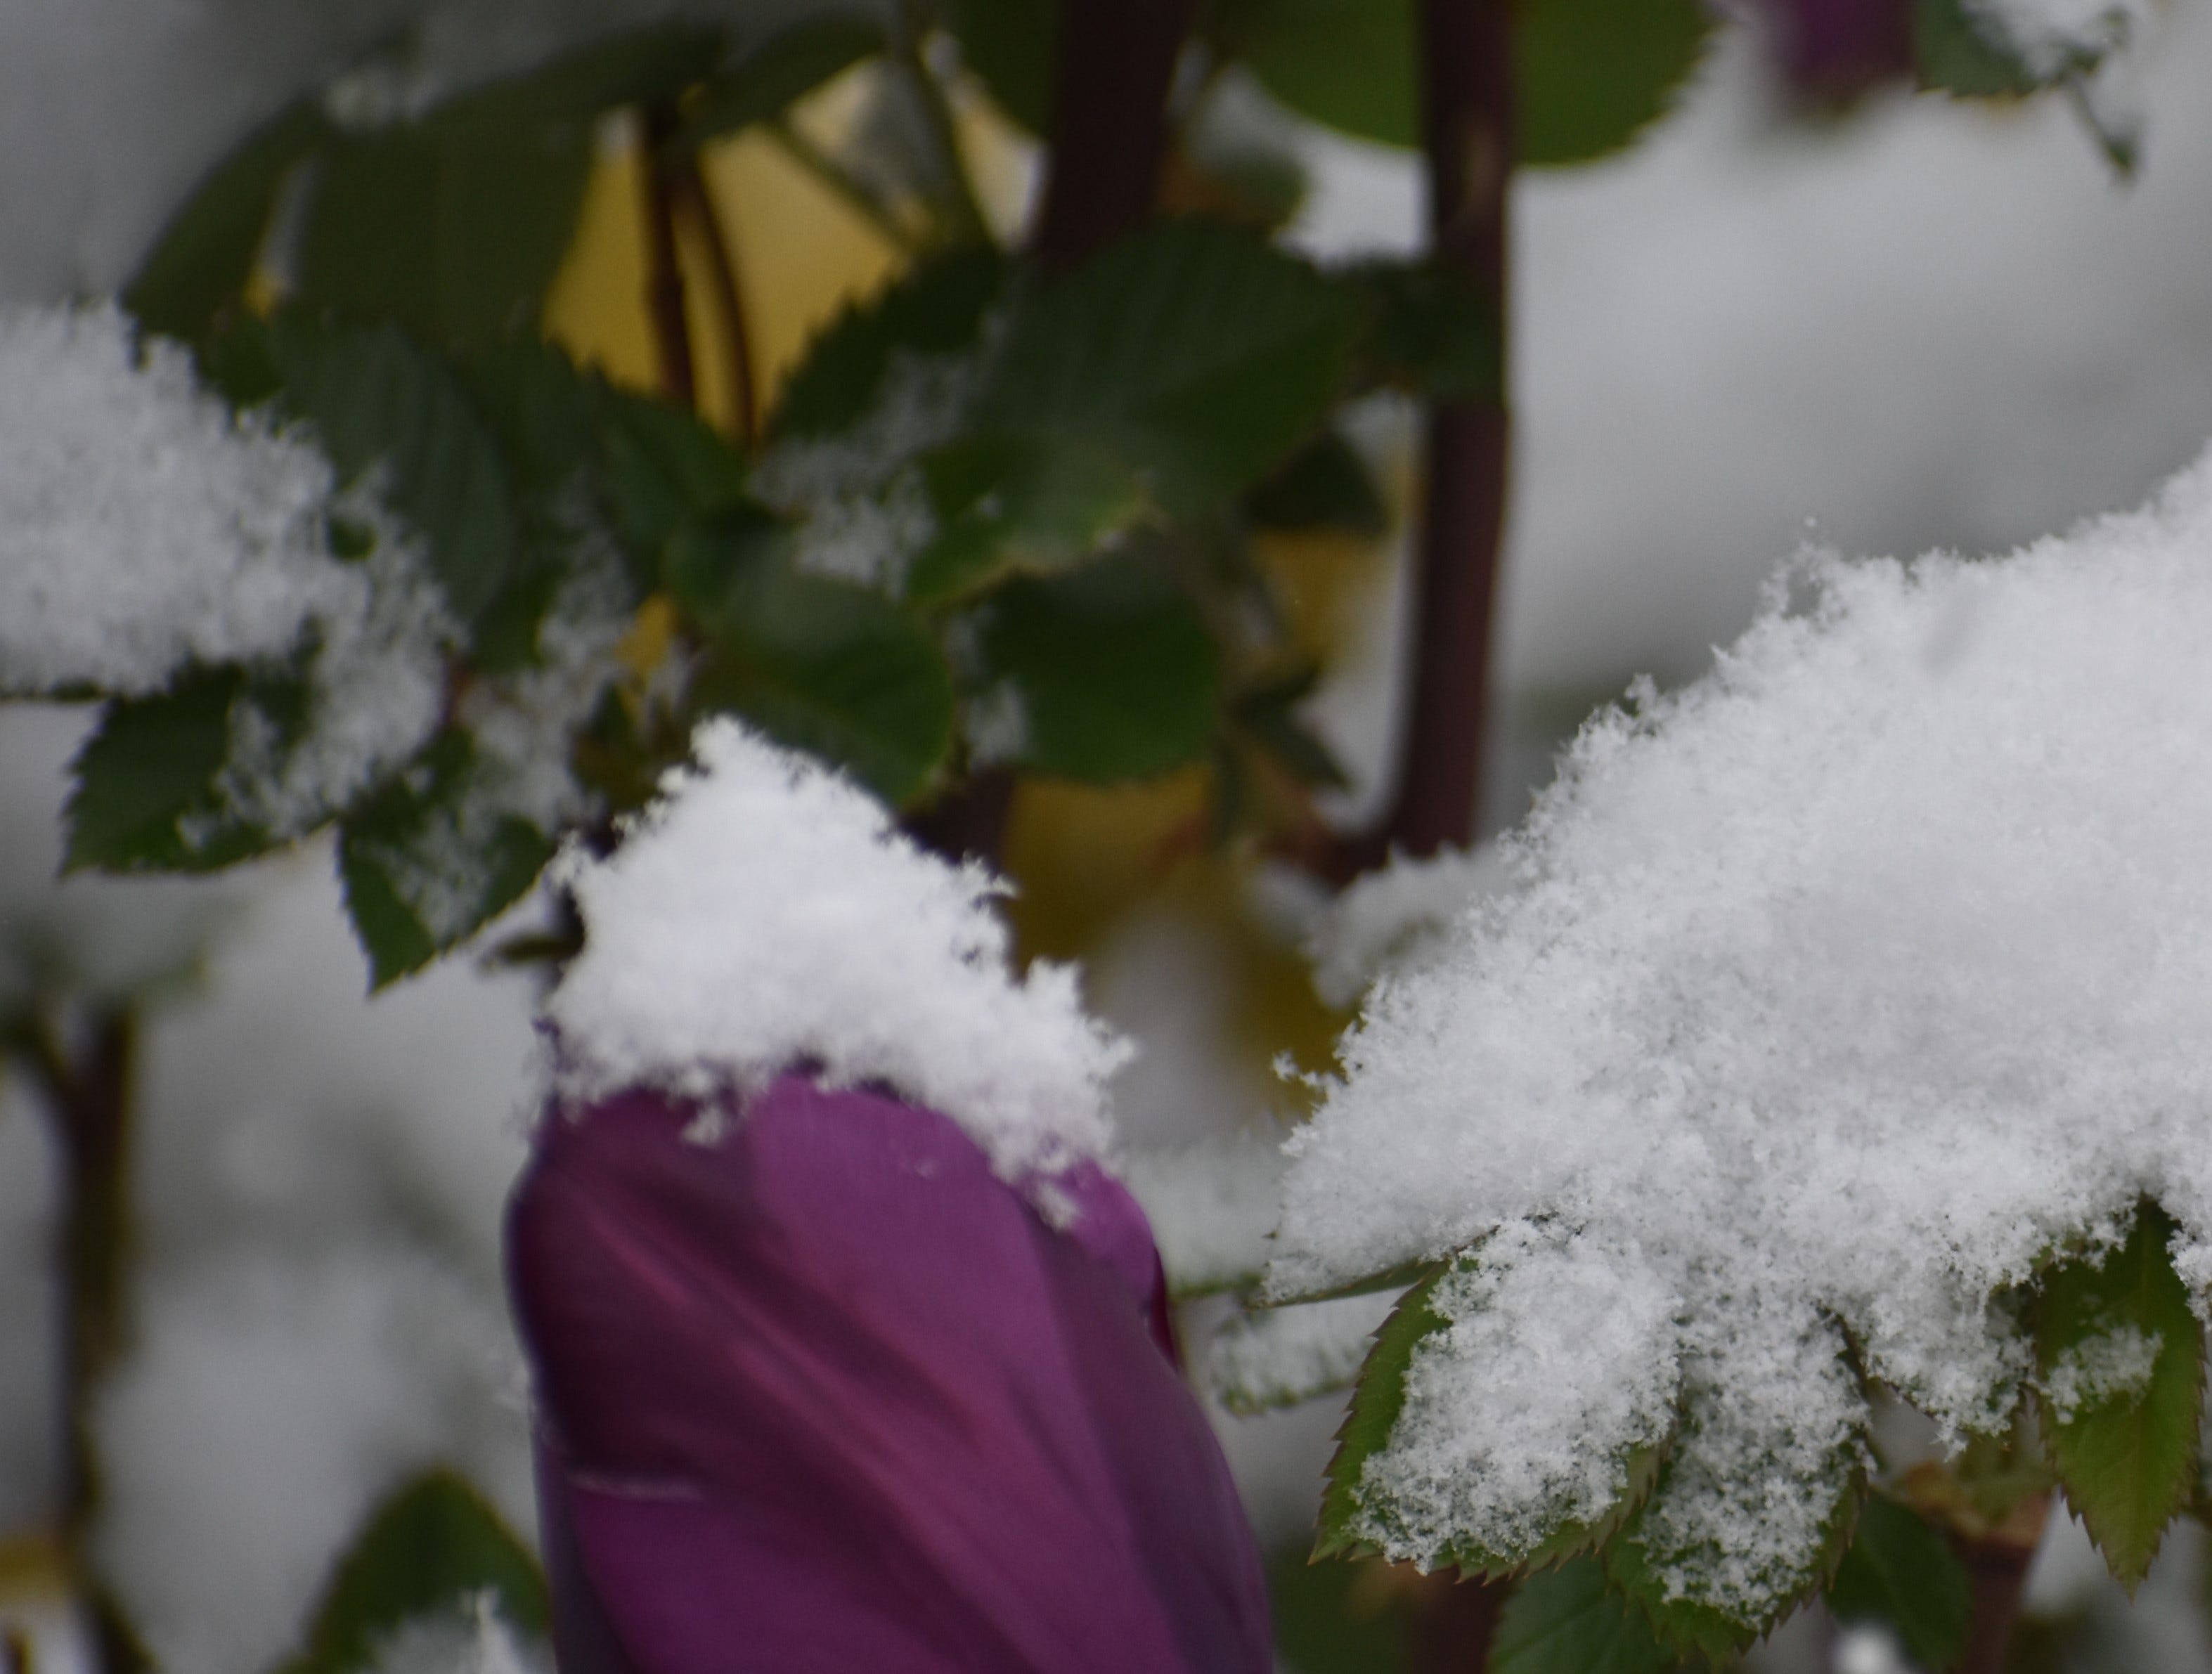 A snow-capped tulip during Monday's snowstorm in Fort Collins.